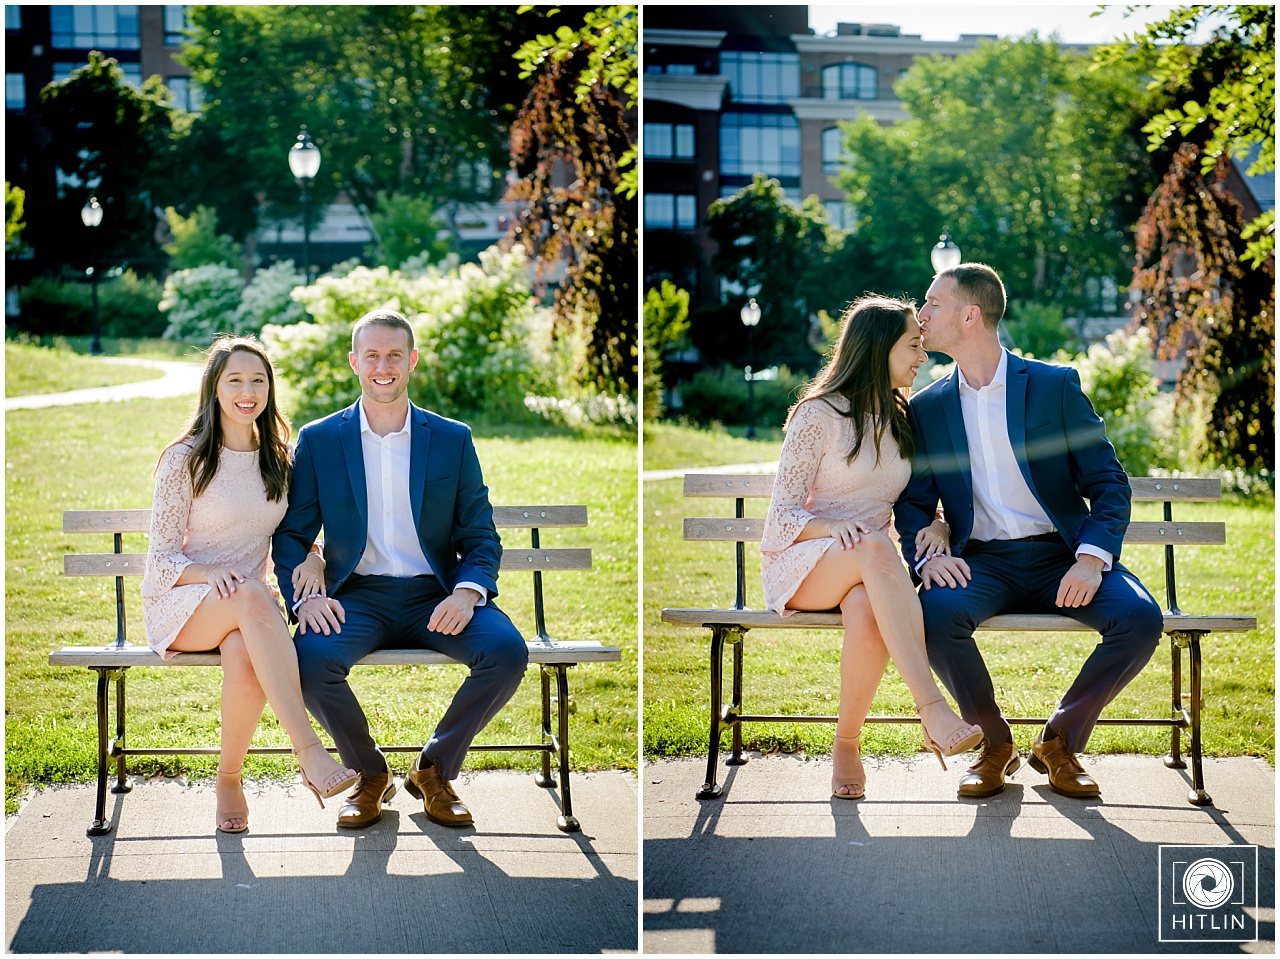 Abby & Kevin's Engagement Session